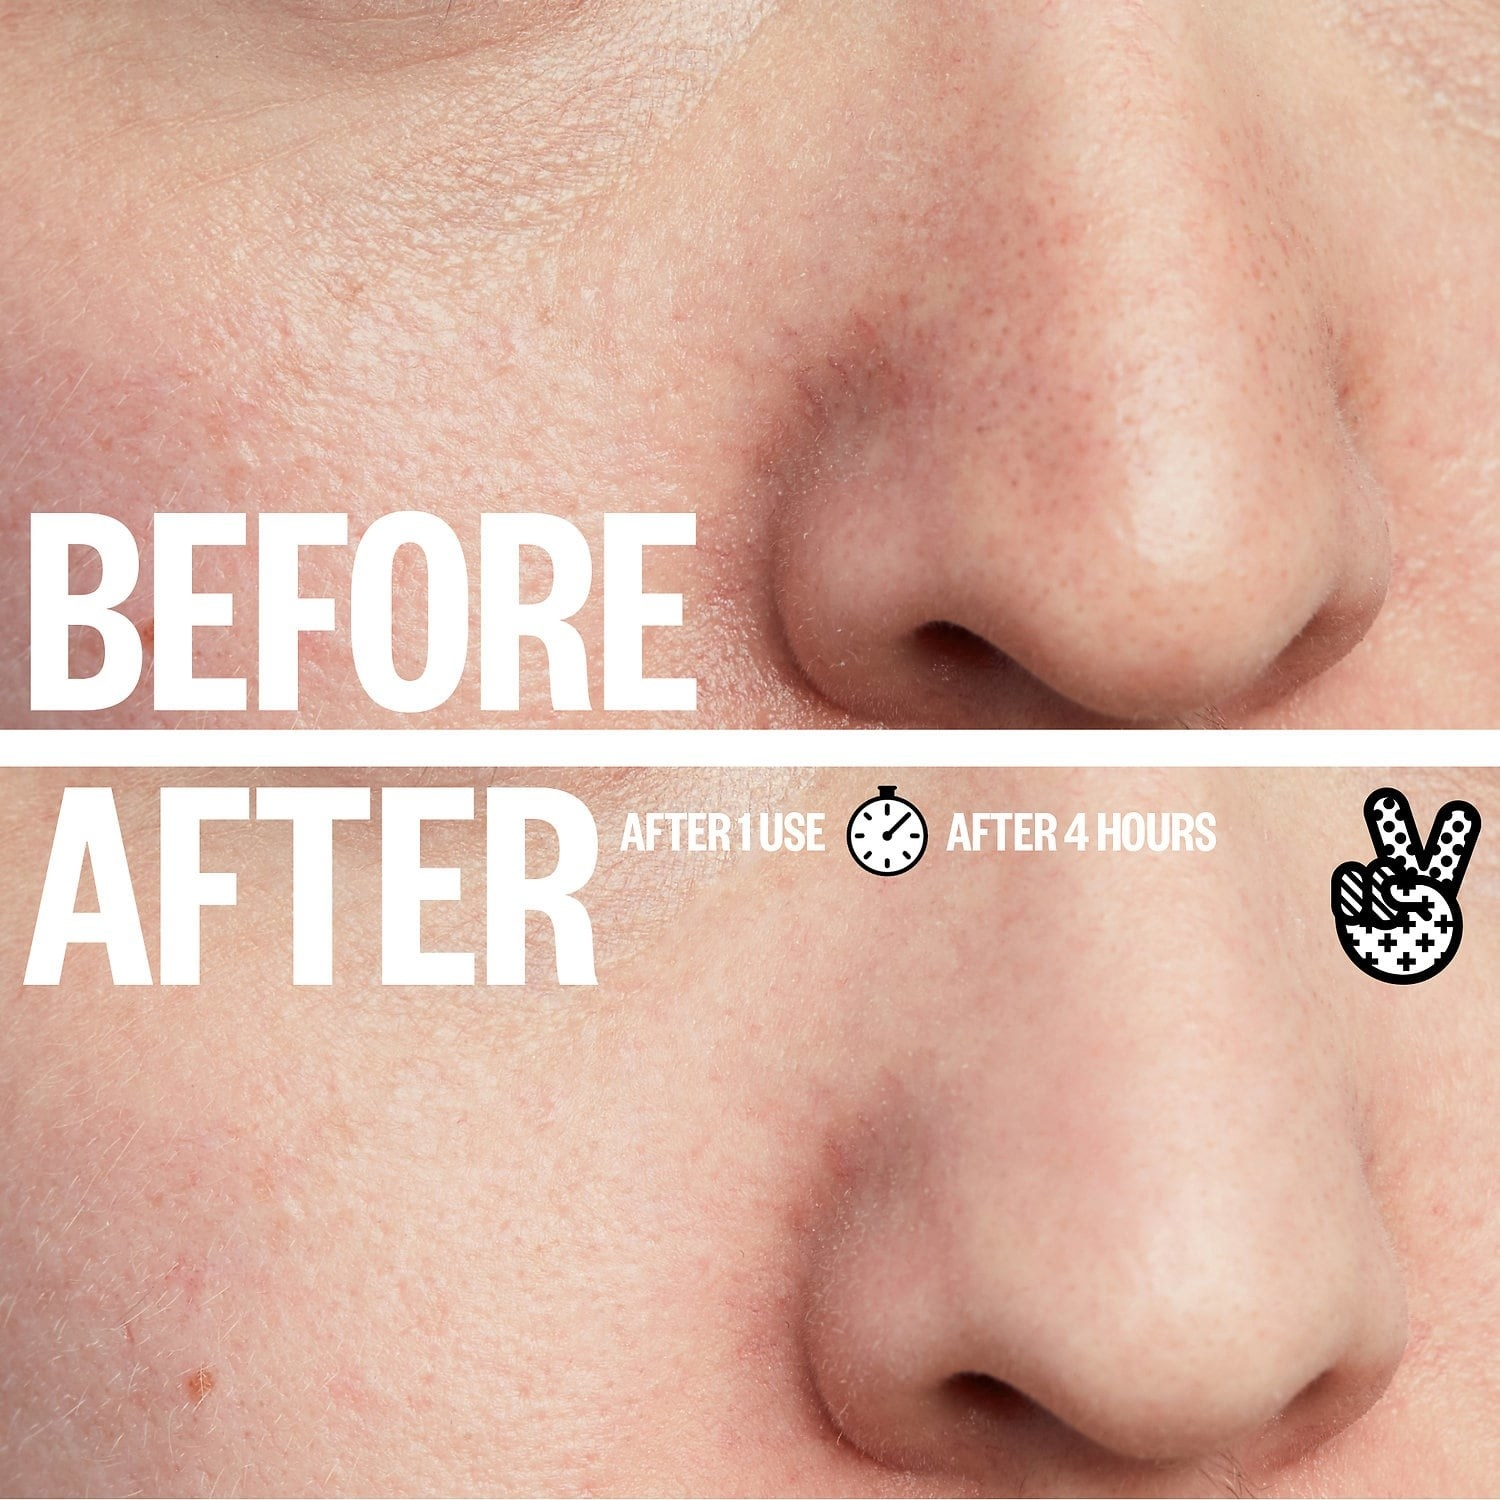 A before/after showing the difference after using the strips for four hours, with less visible pores after and fewer blackheads